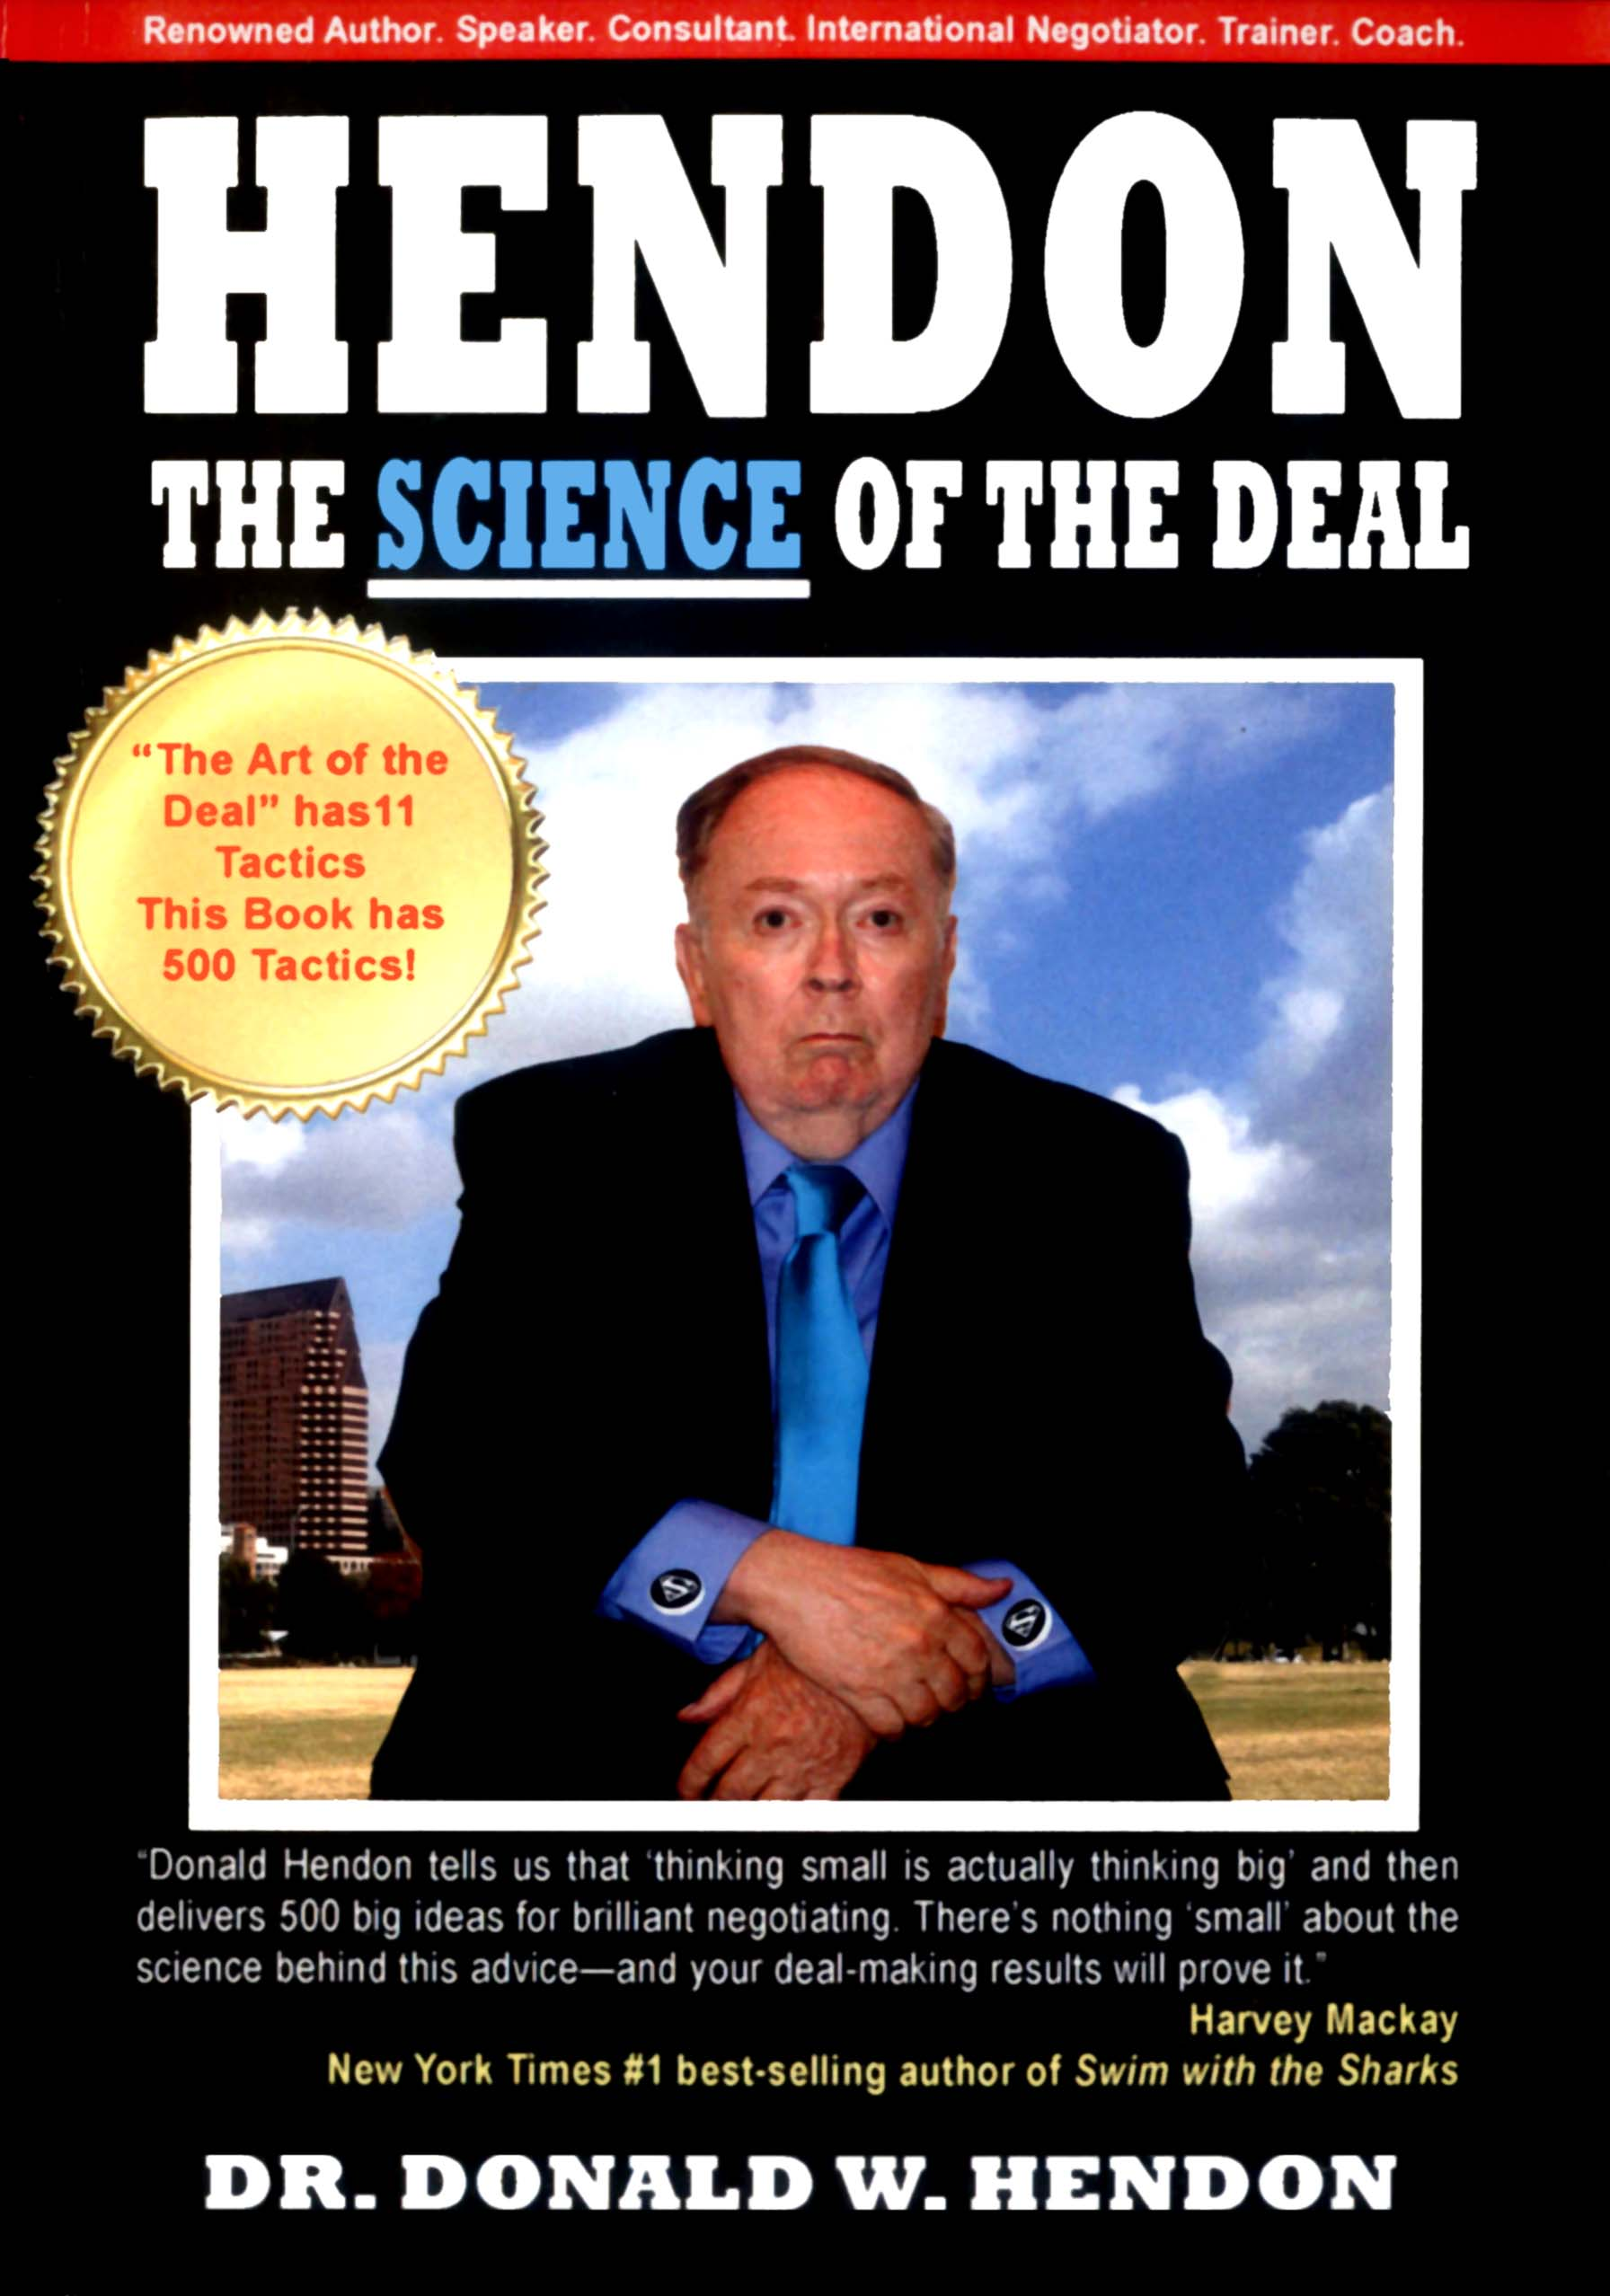 The Science of the Deal